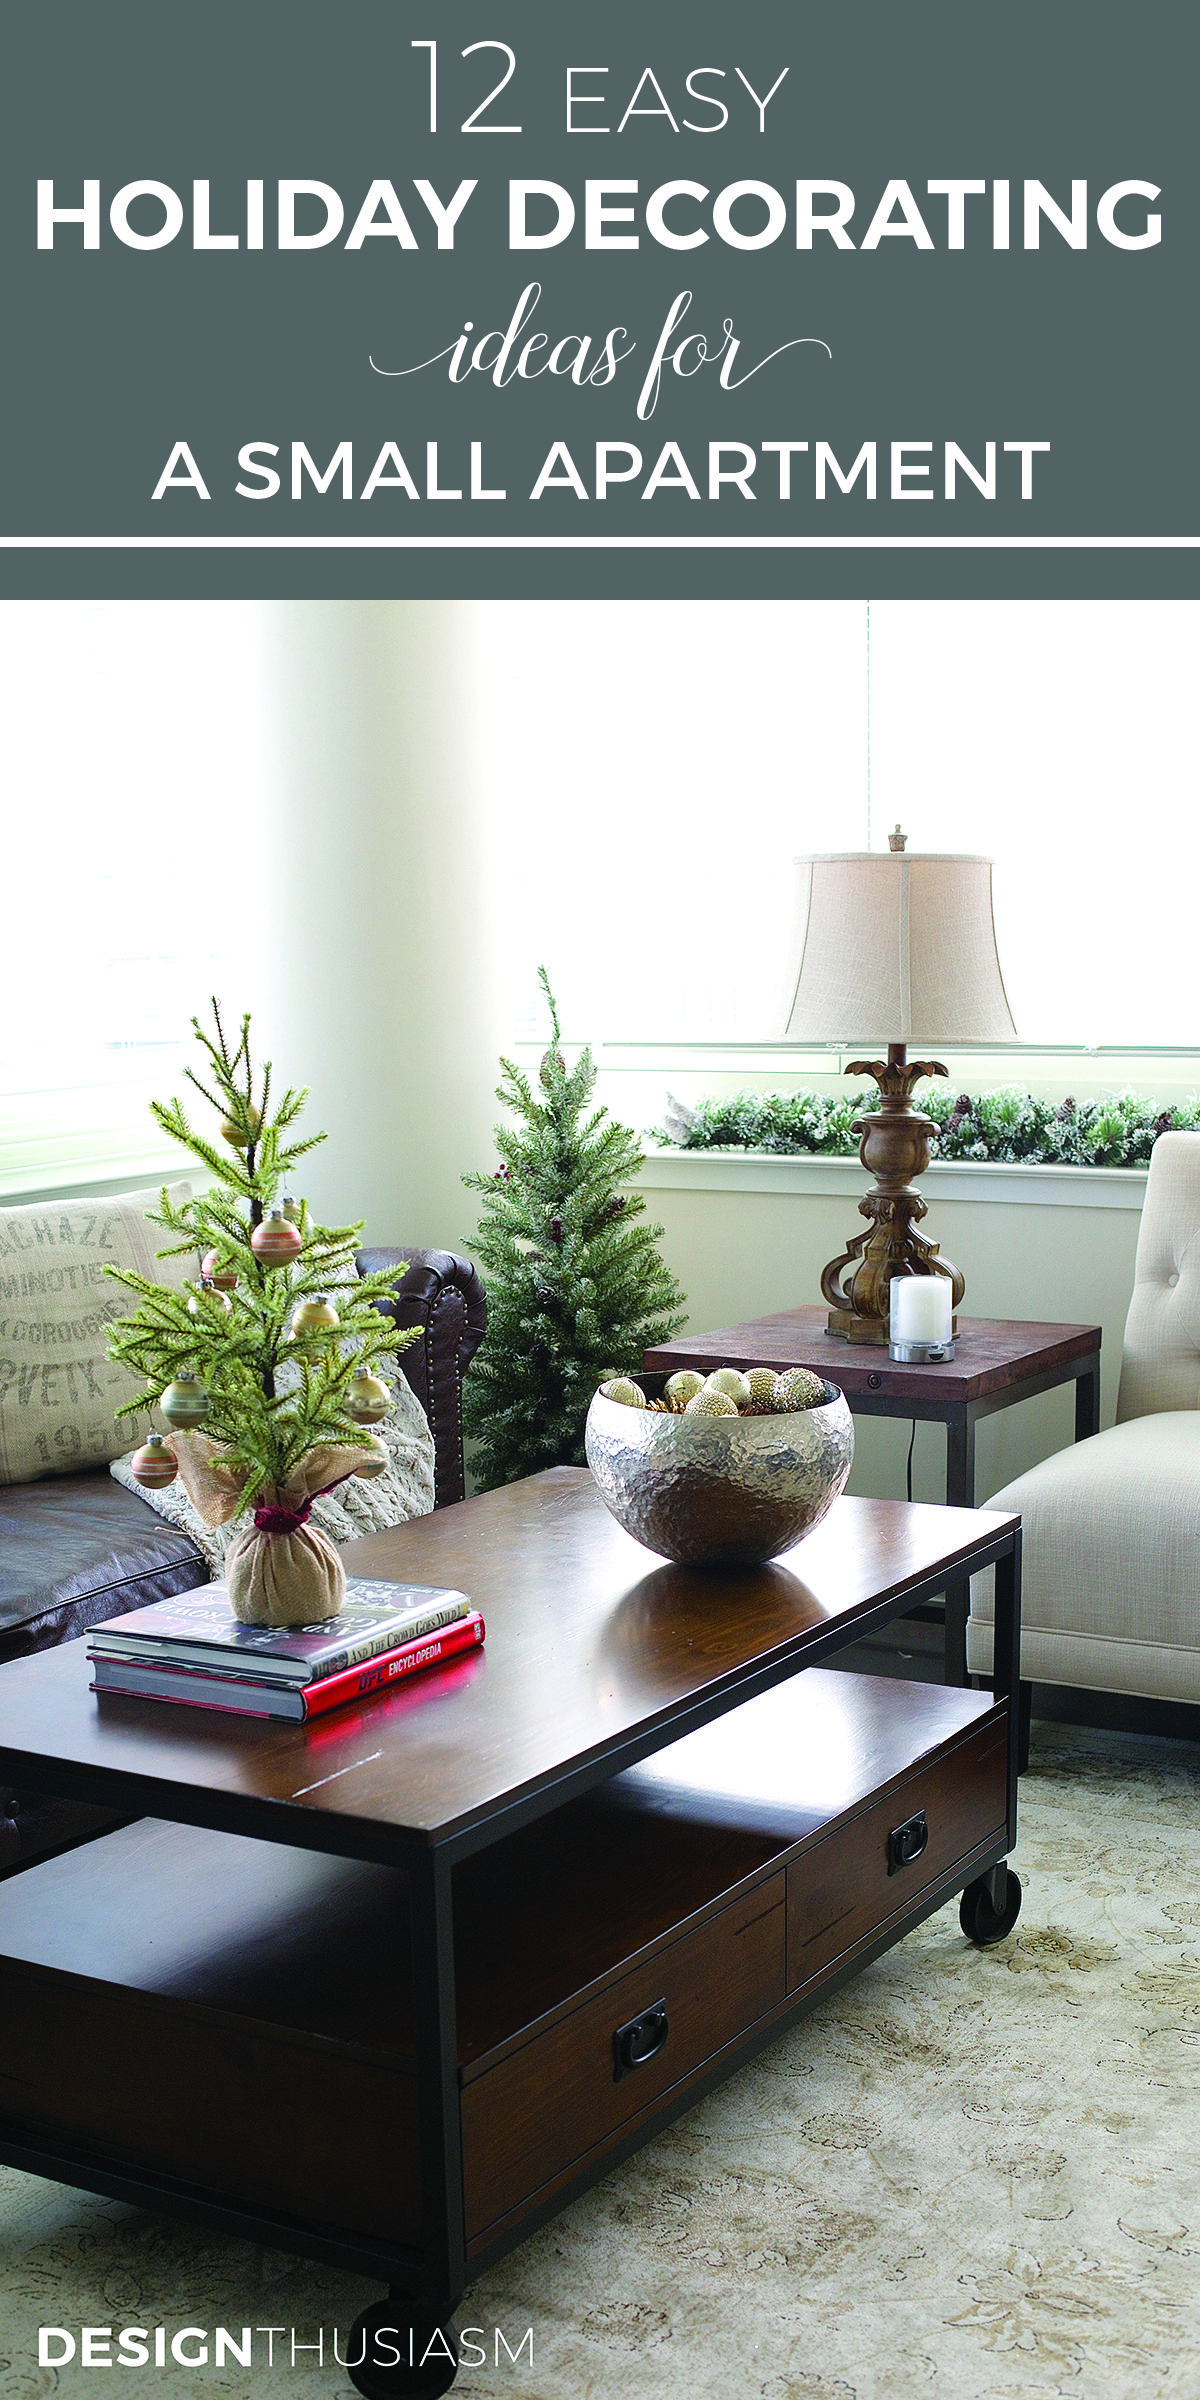 12 Easy Holiday Decorating Ideas For A Small Apartment